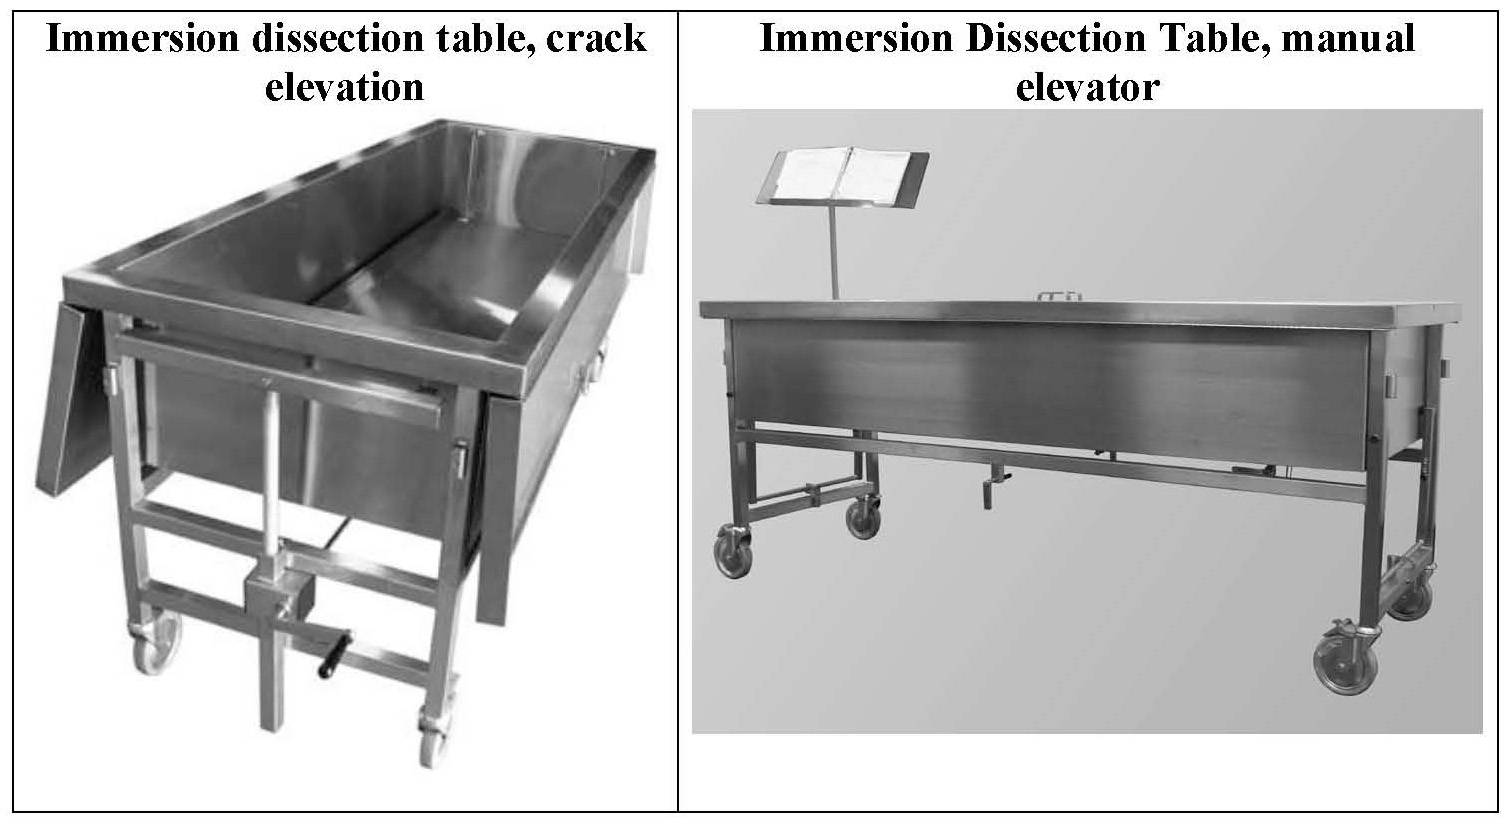 Immersion dissection table